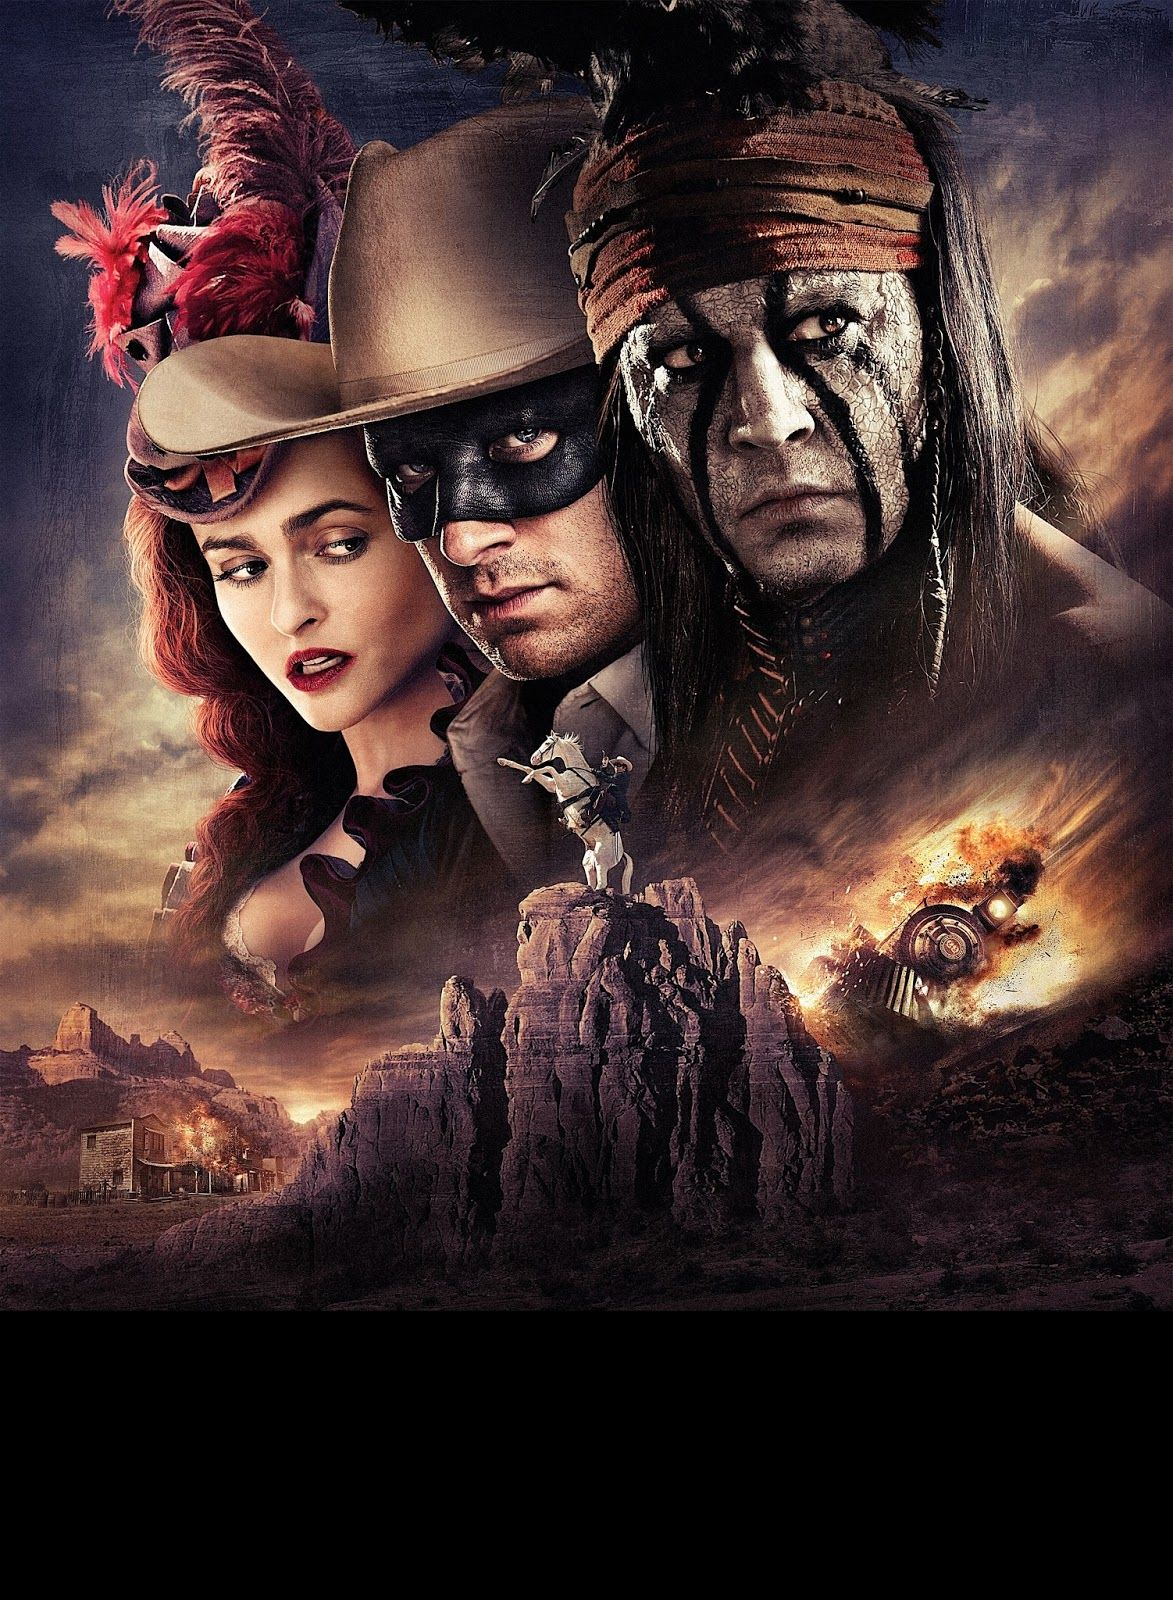 The Lone Ranger Lone ranger, Action movies, Good movies